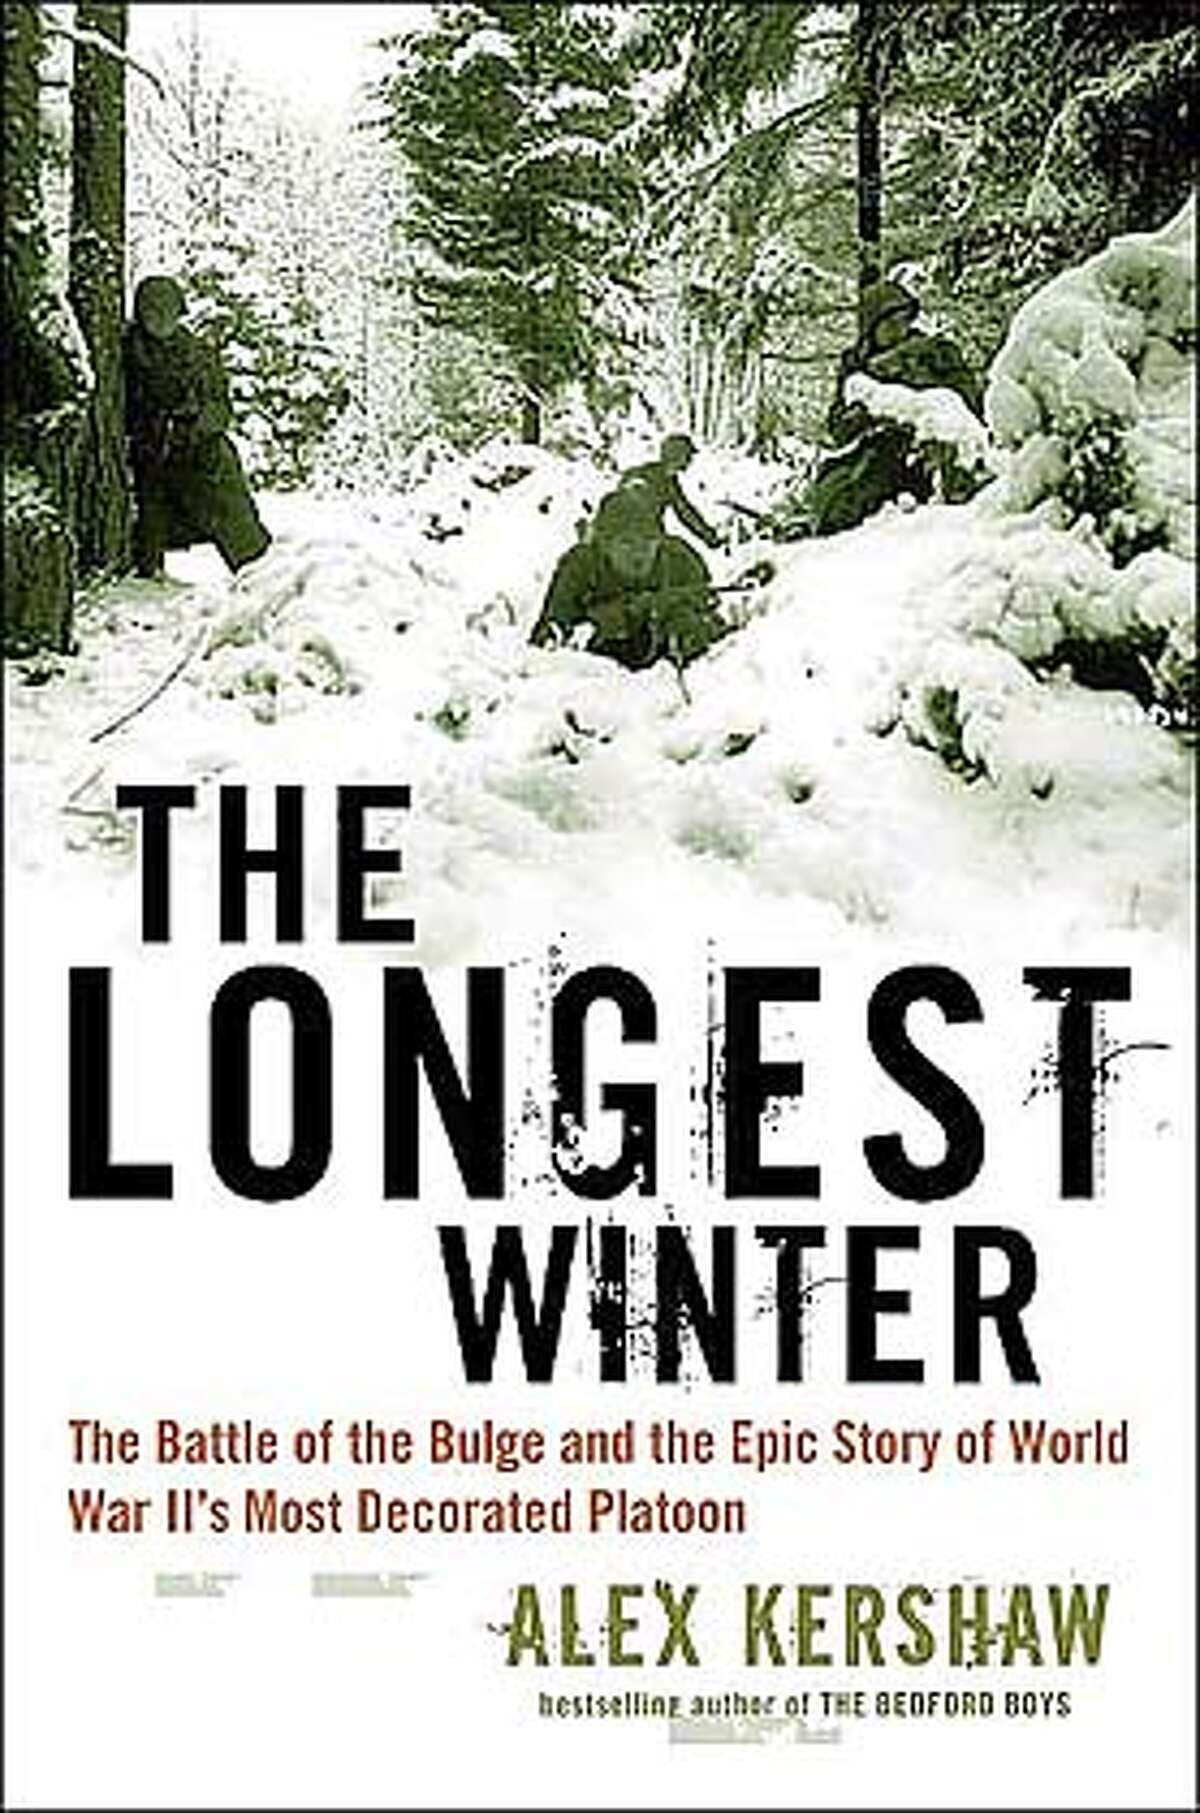 Book cover art for, The Longest Winter.